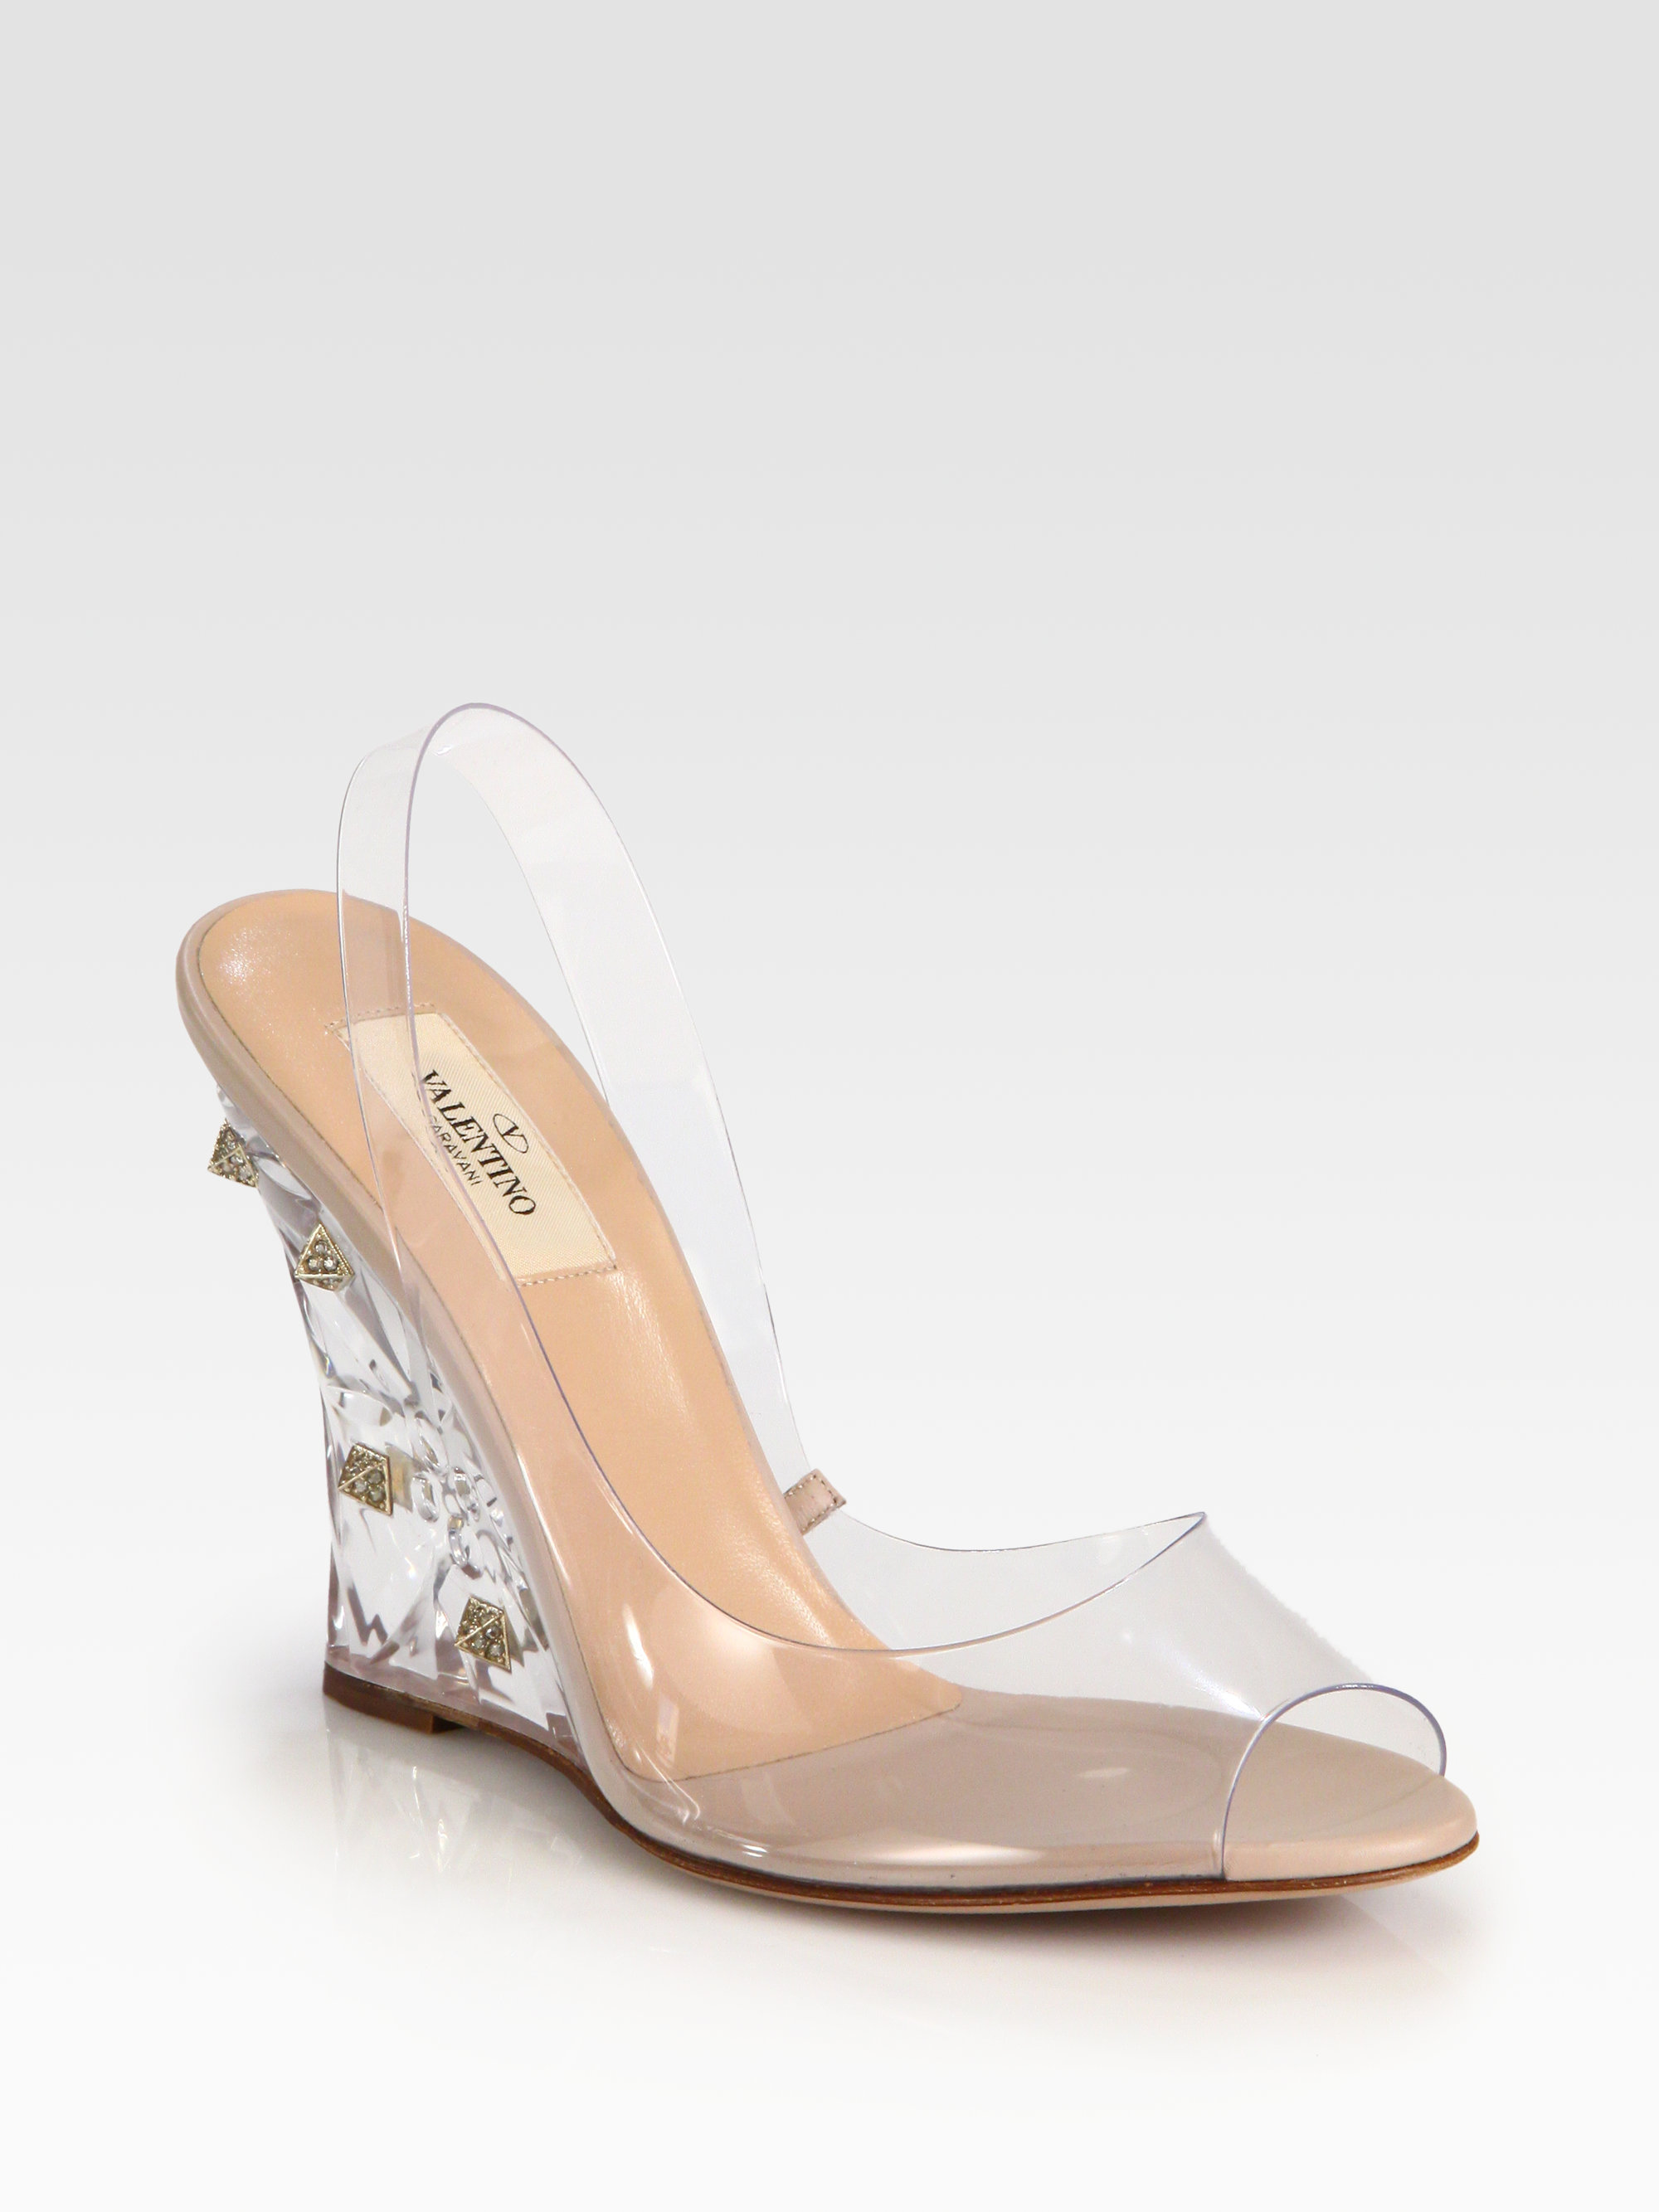 0f51b38c0f0d Lyst - Valentino Naked Rockstud Lucite Wedge Sandals